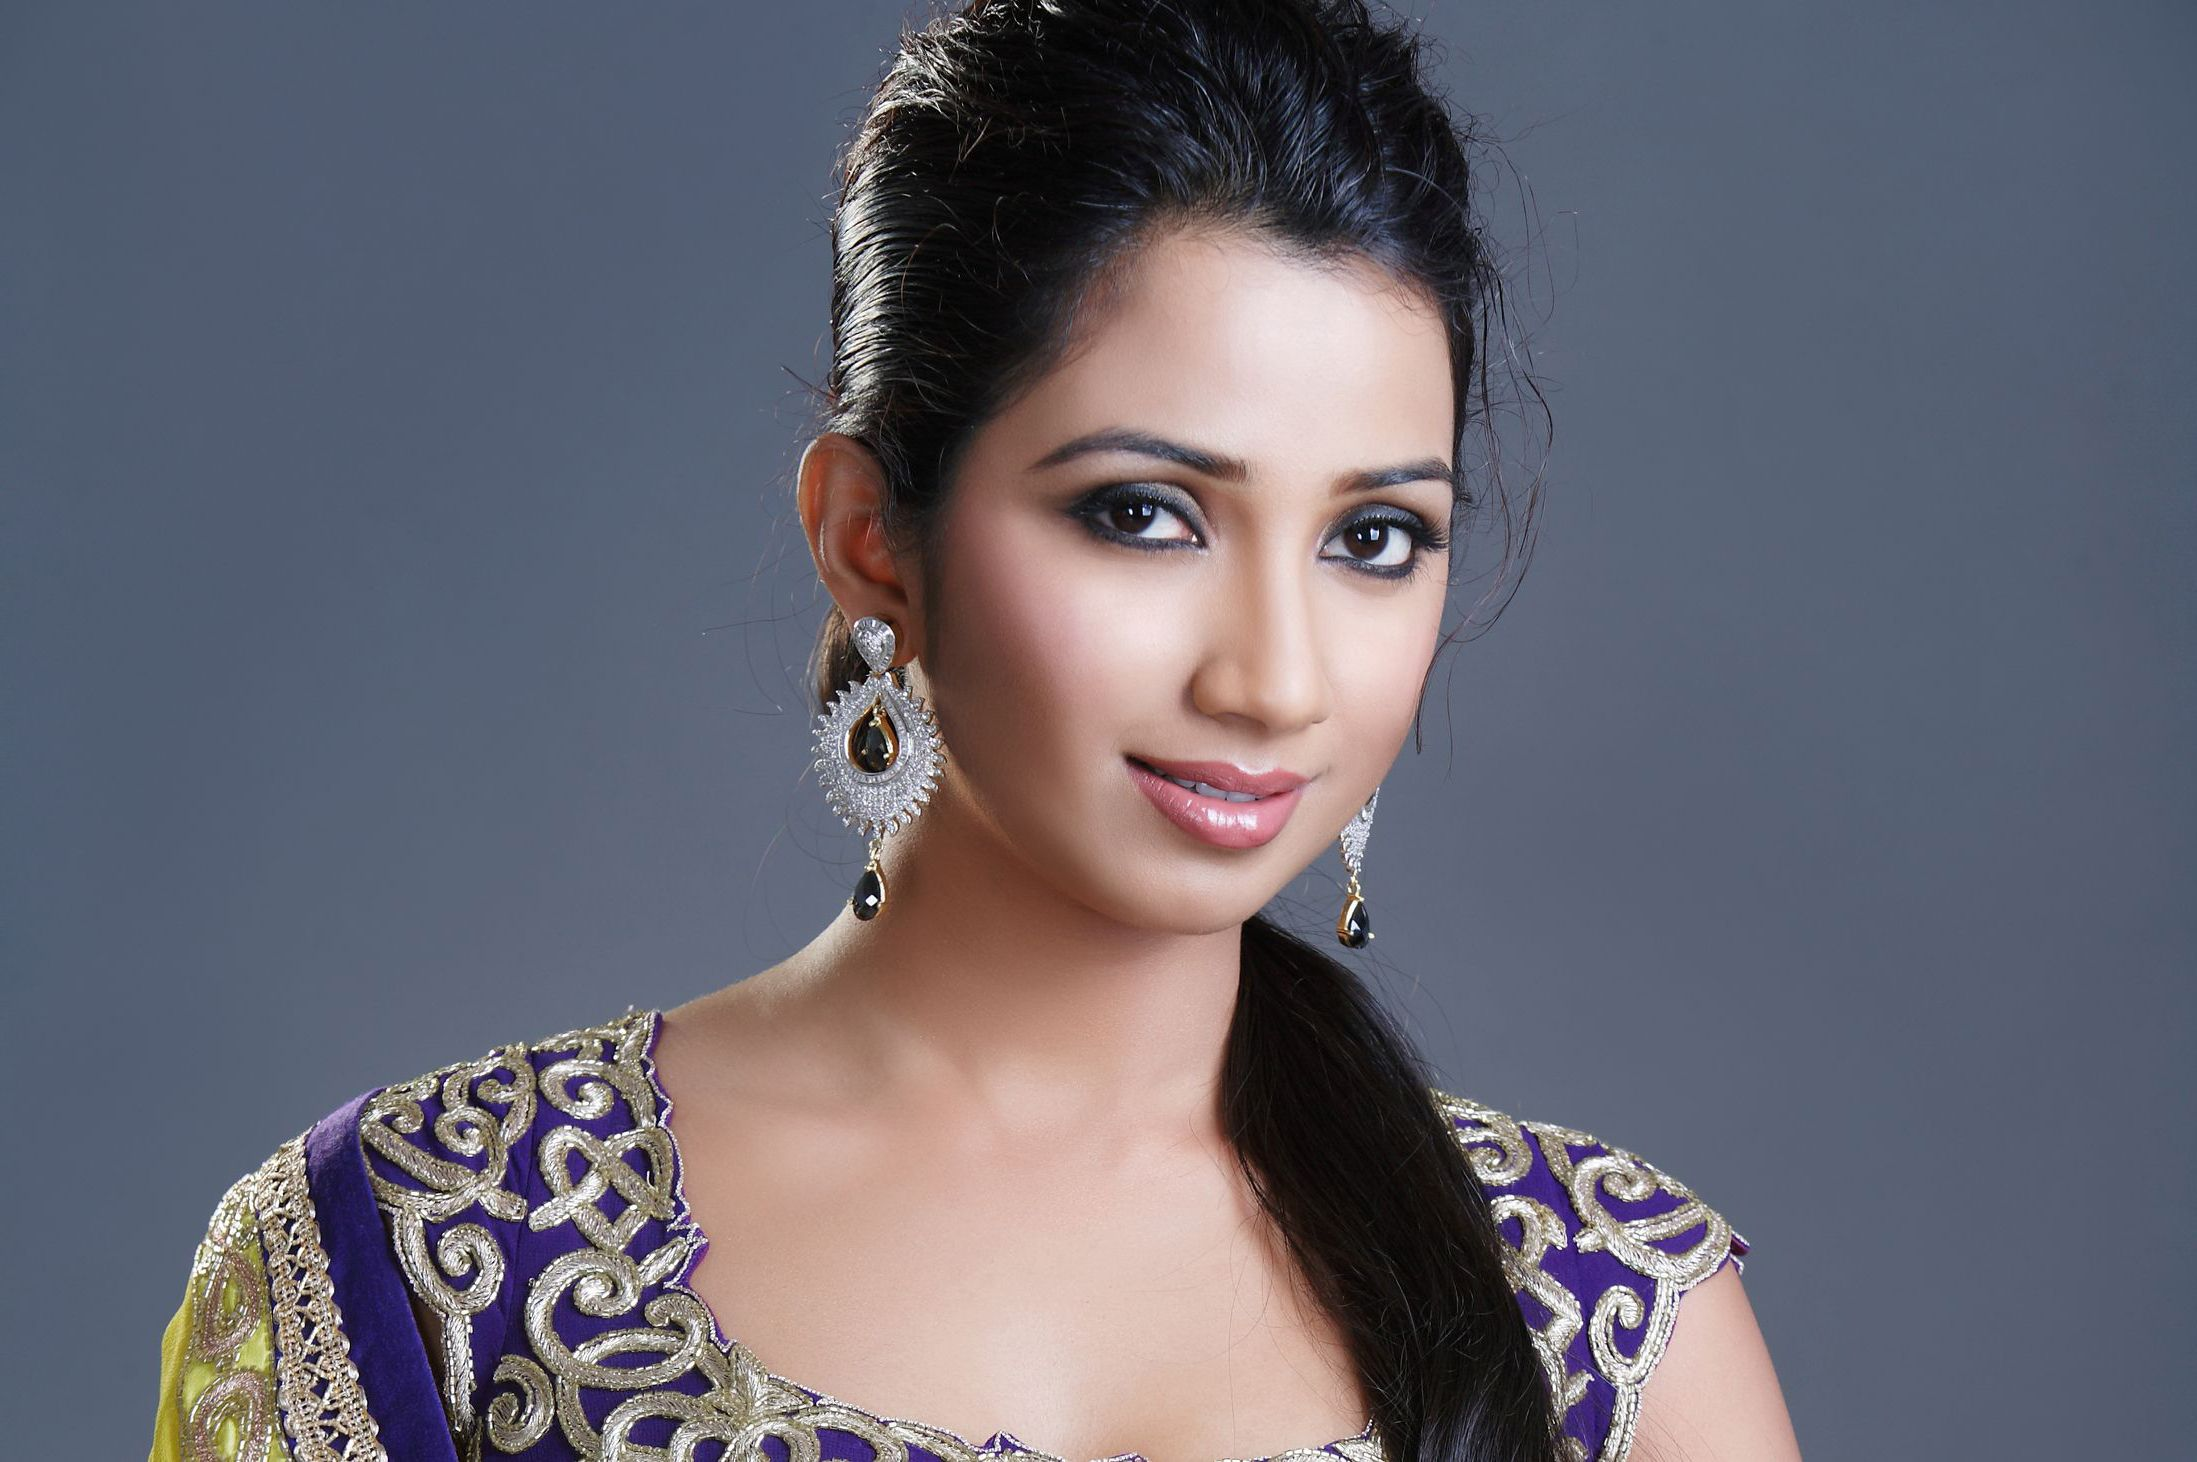 25 Beautiful Shreya Ghoshal Hd Wallpapers Free Download -4010